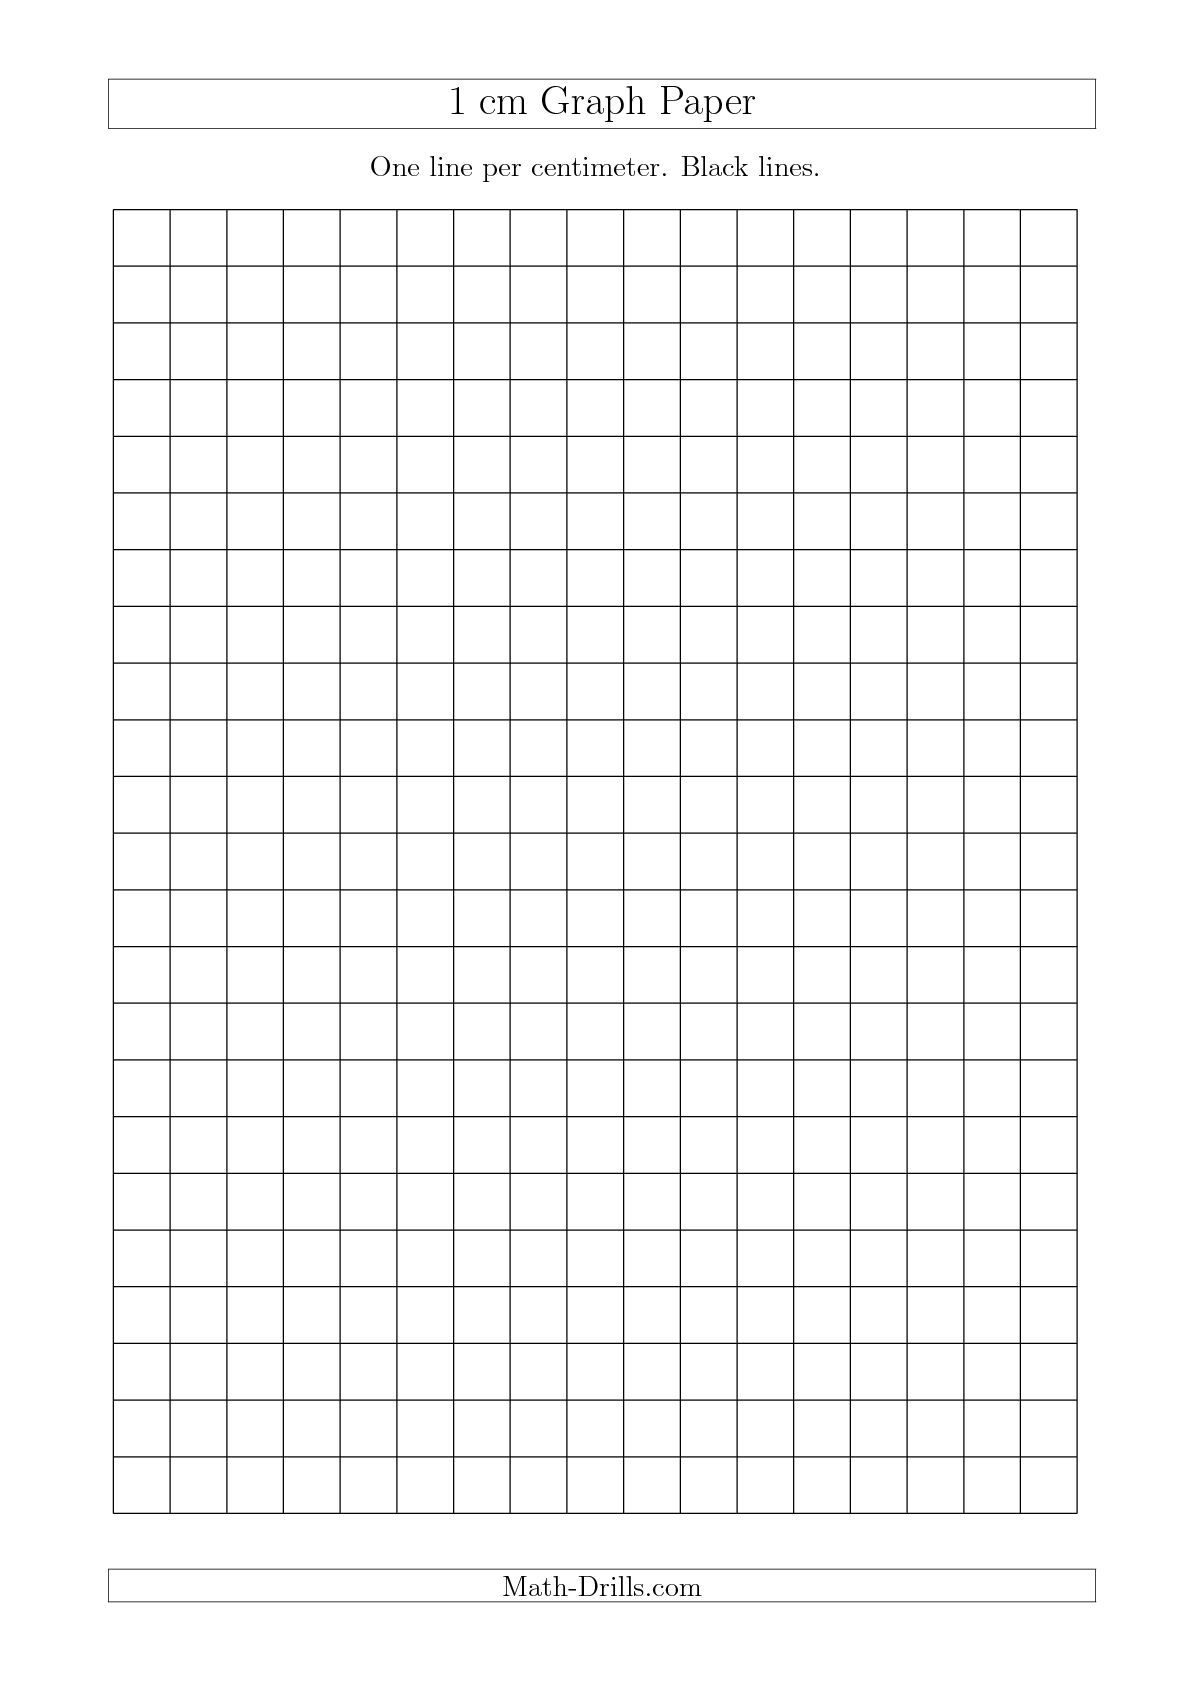 1 Cm Graph Paper With Black Lines A4 Size A Math Worksheet Freemath